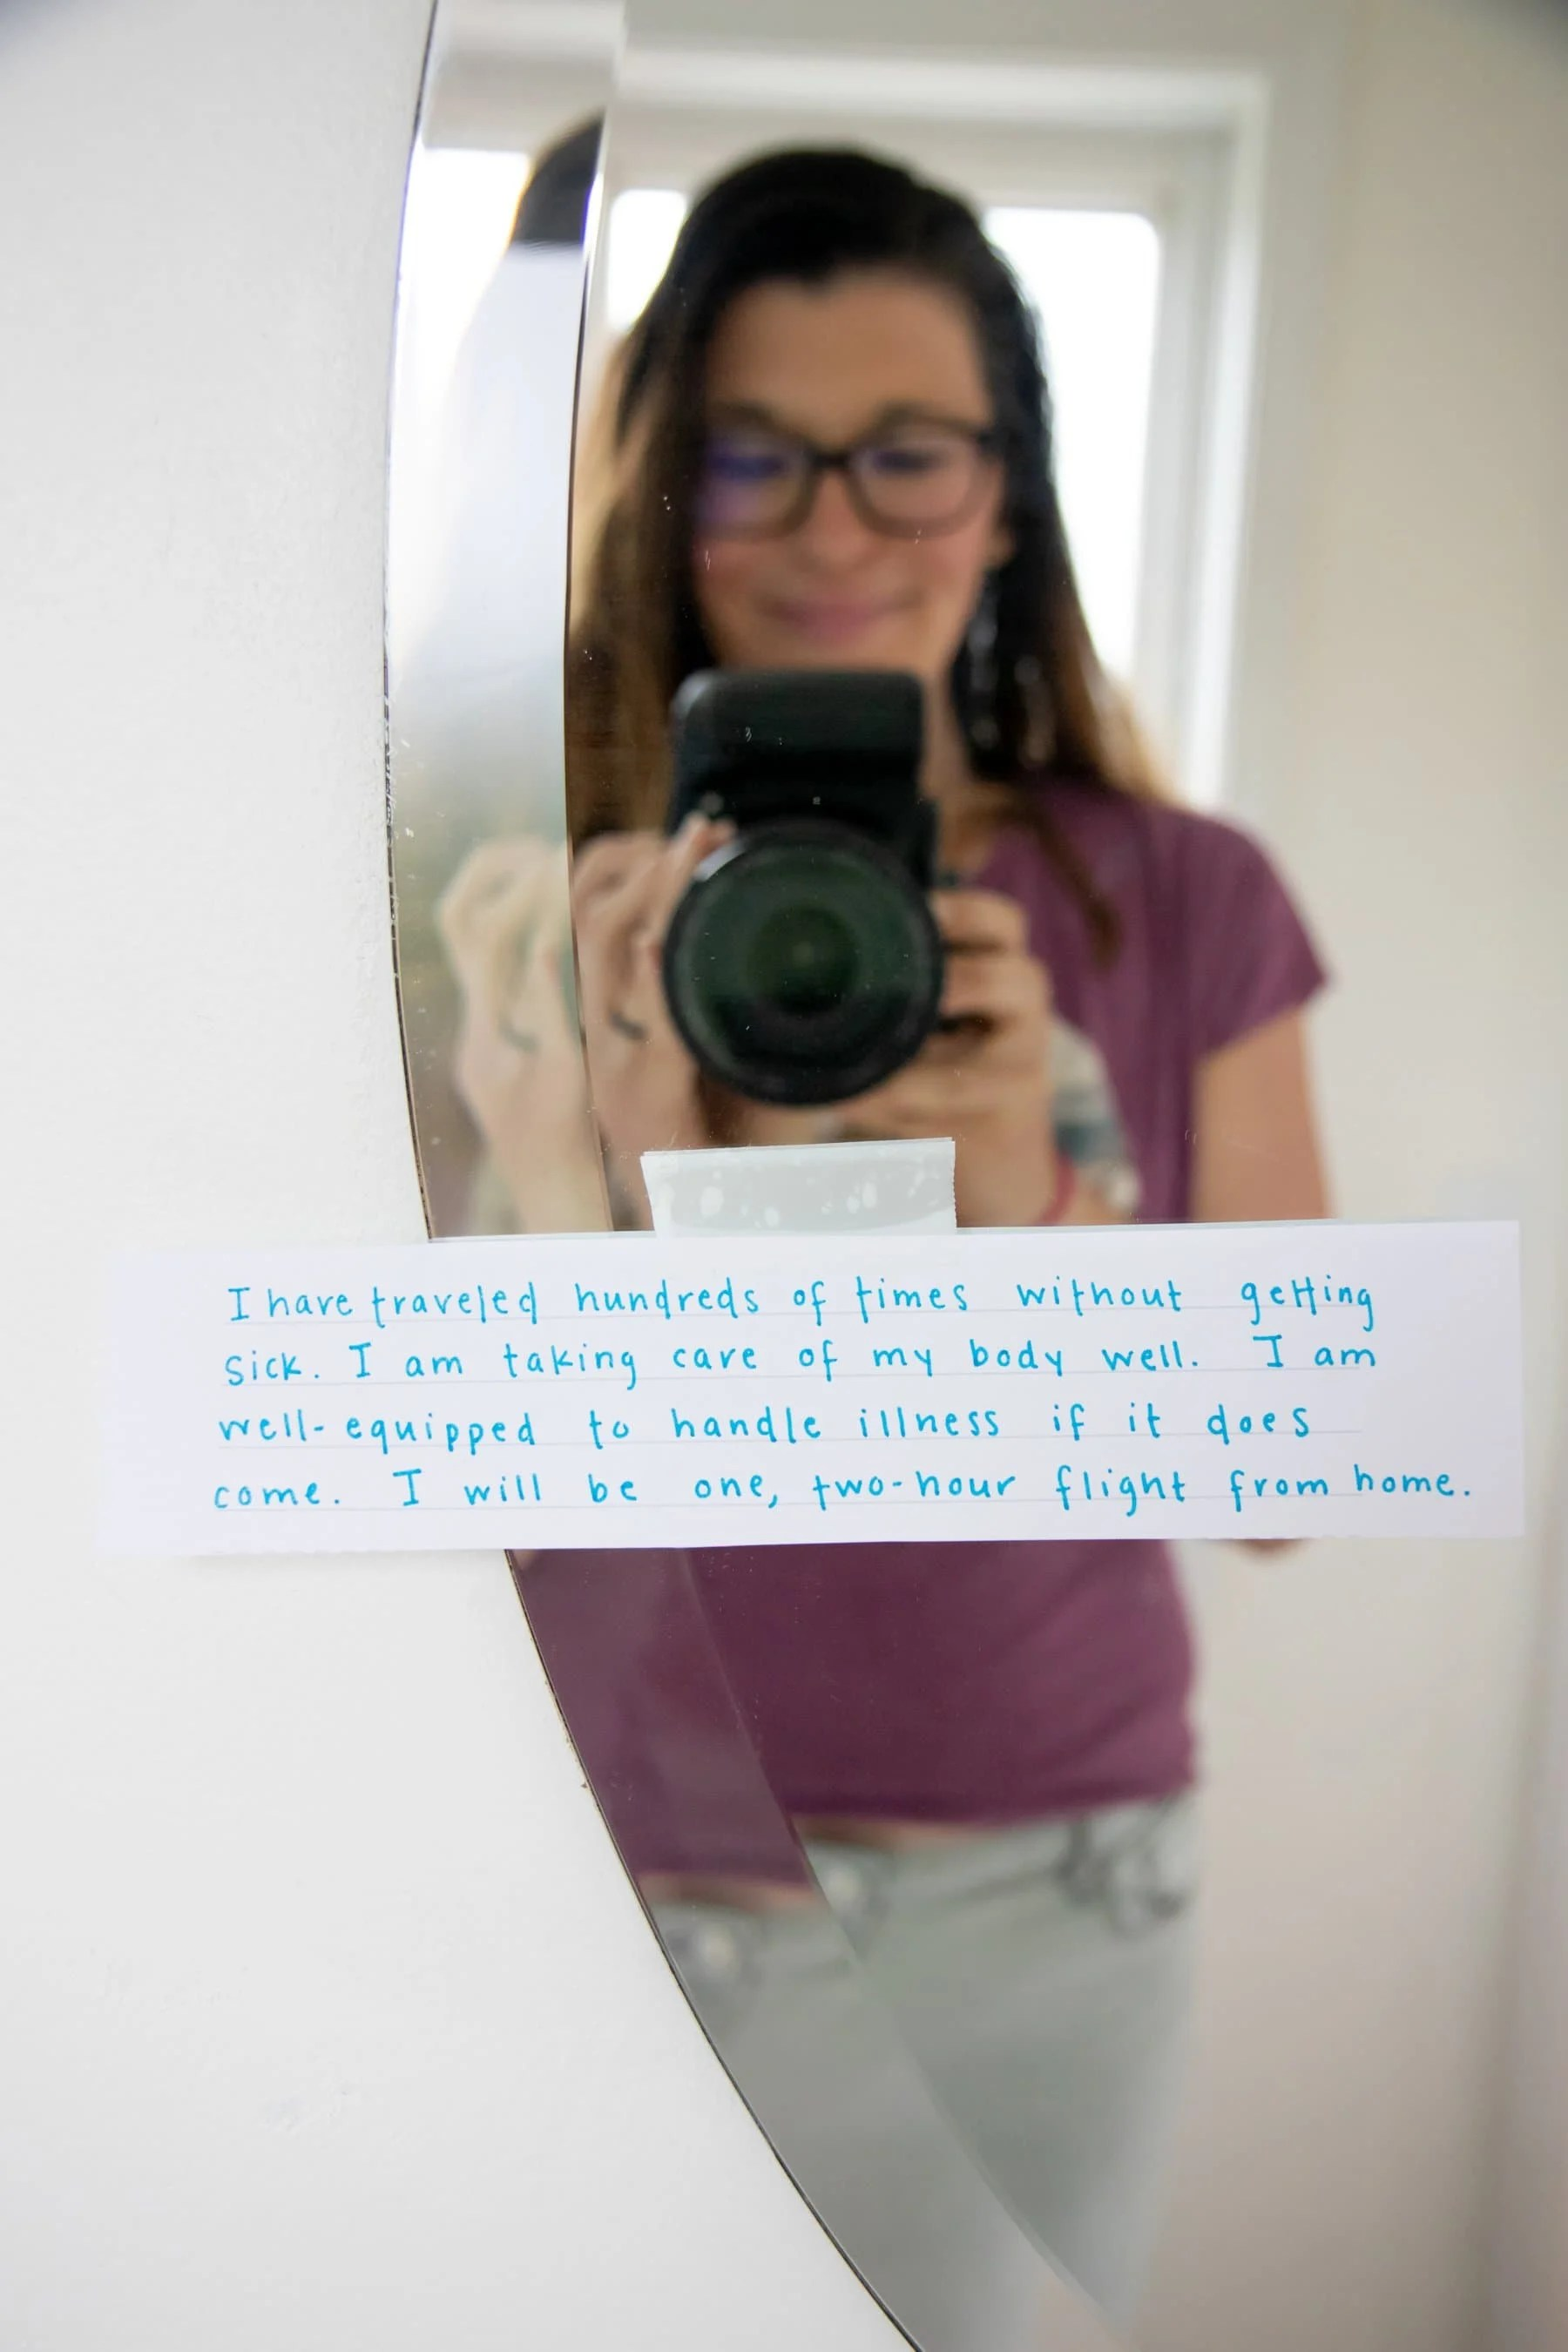 A woman takes a picture of her hand written note that is stuck to the mirror with a piece of tape.